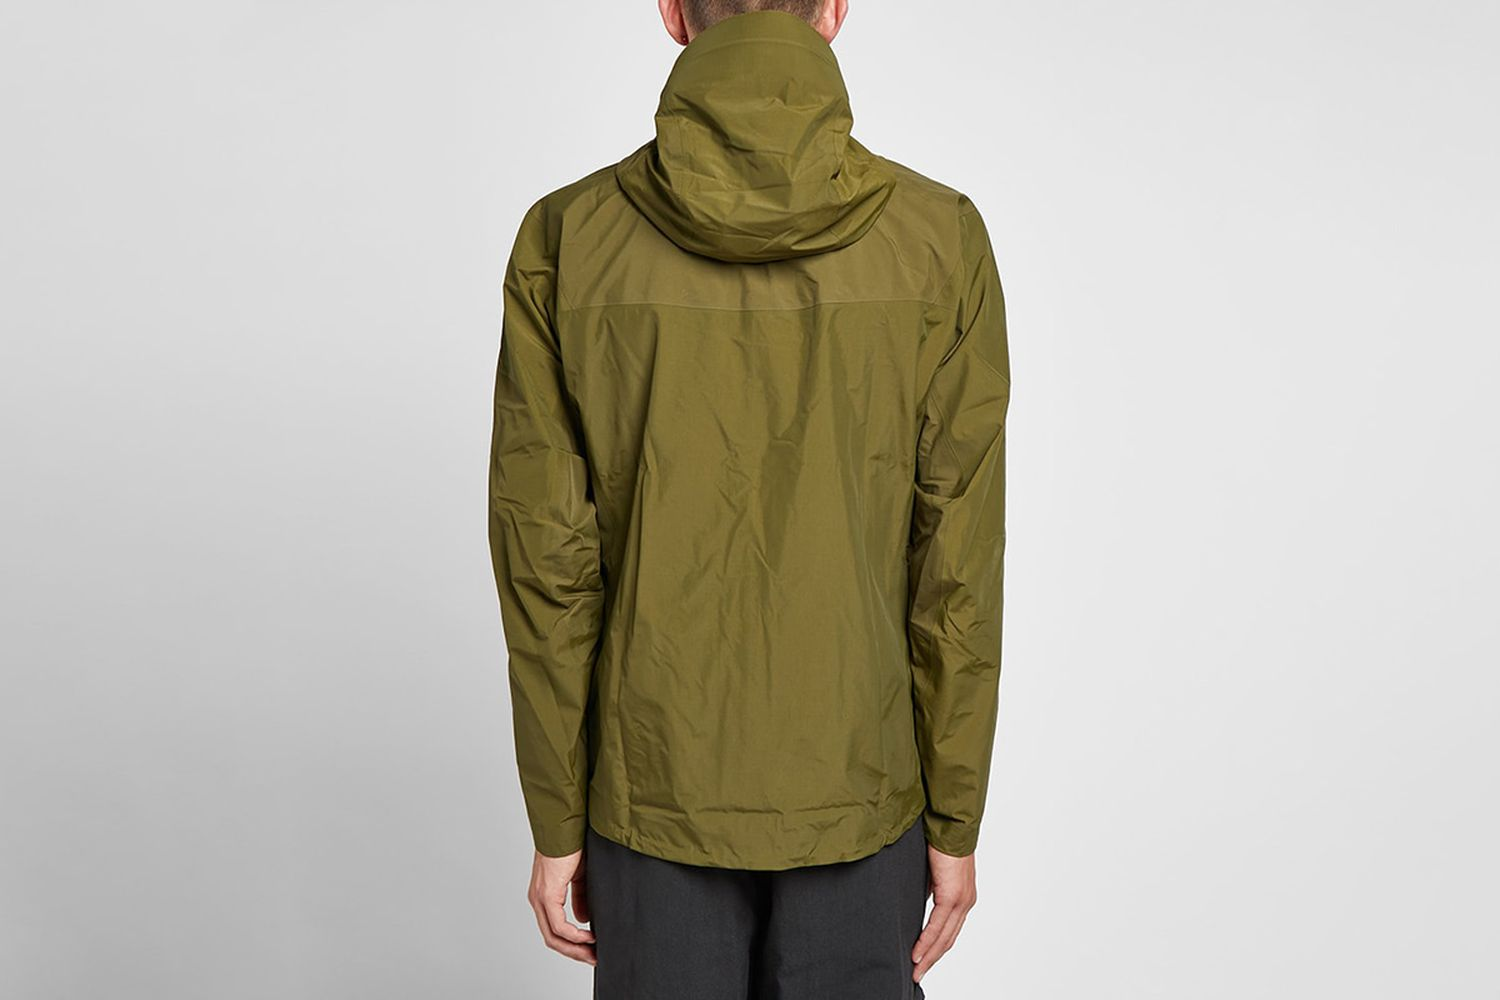 Beta SL Gore-Tex Hybrid Jacket